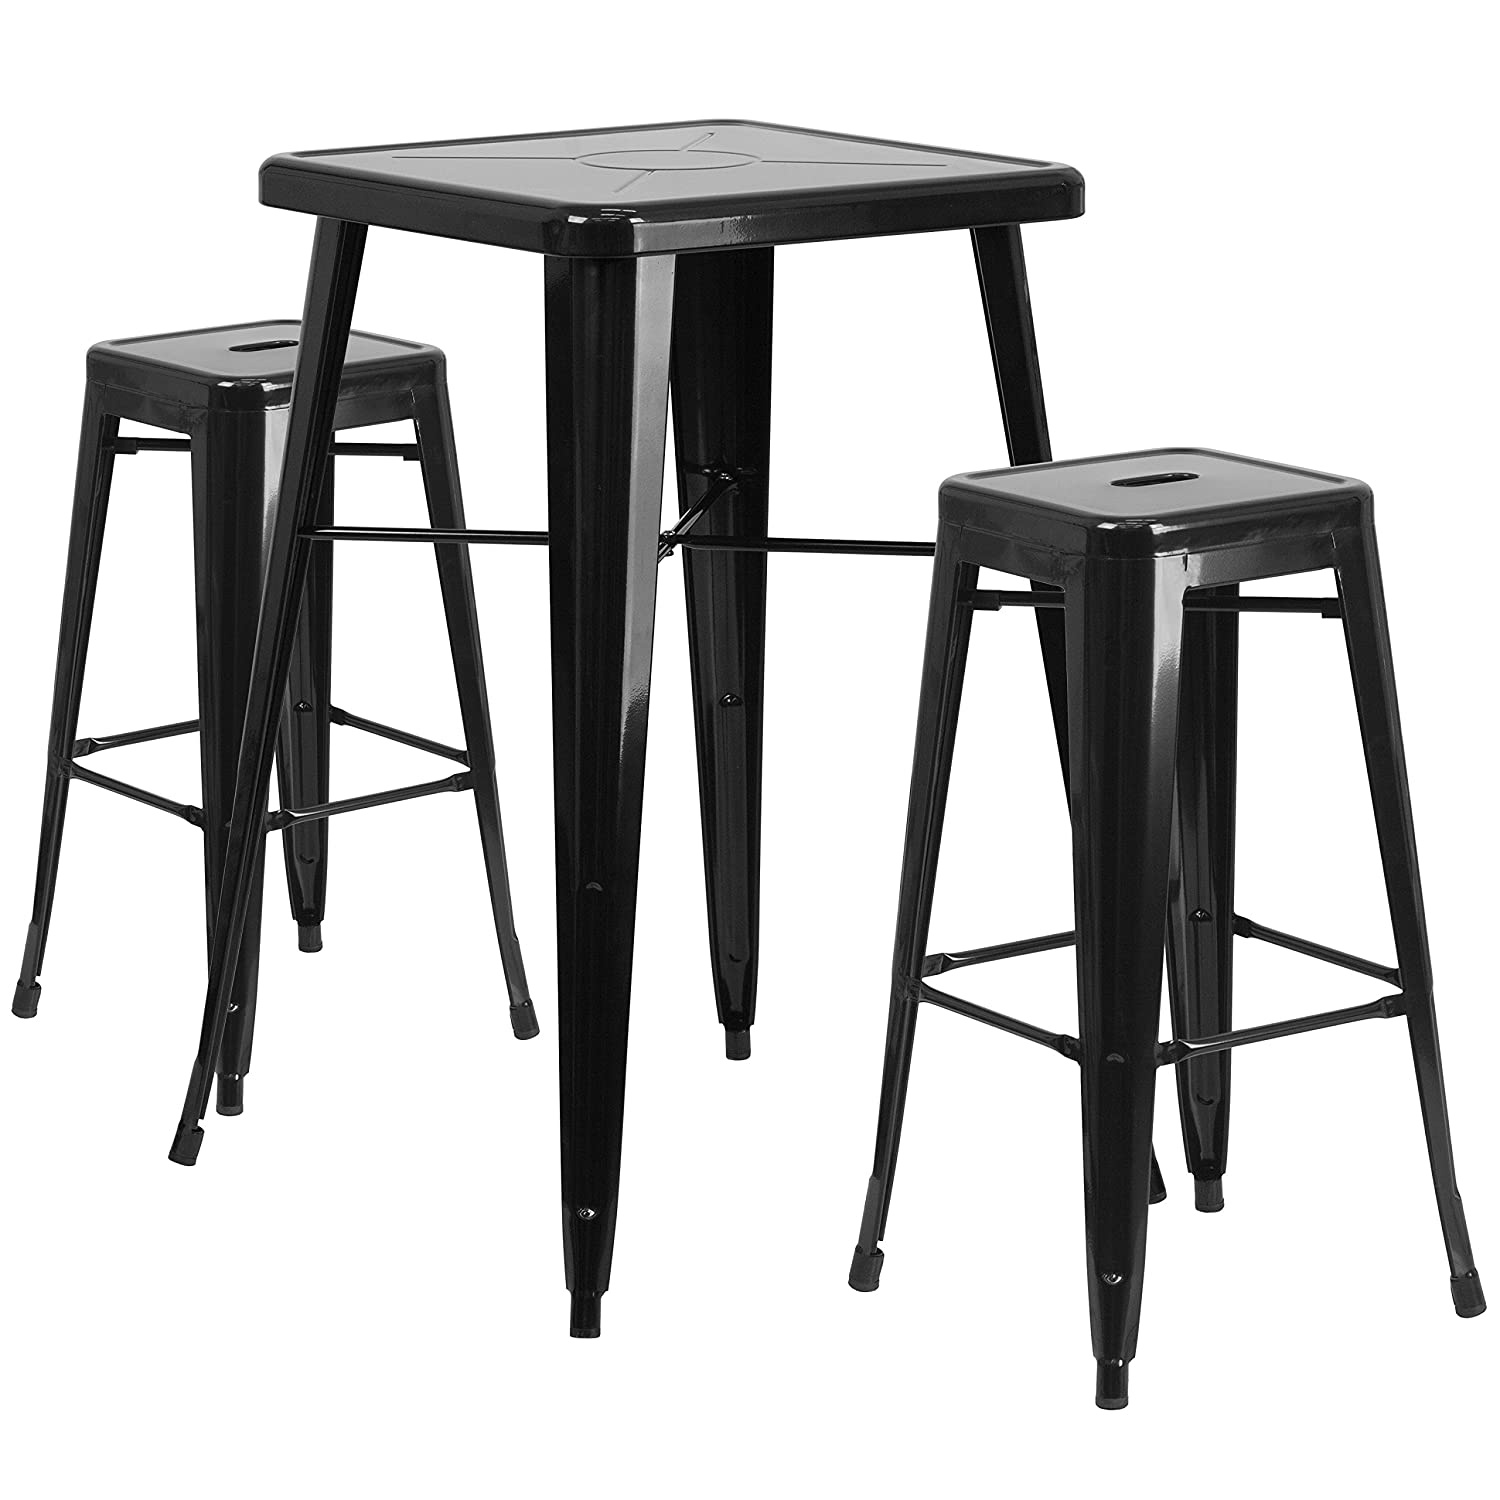 Flash Furniture 23.75'' Square Black Metal Indoor-Outdoor Bar Table Set with 2 Square Seat Backless Stools